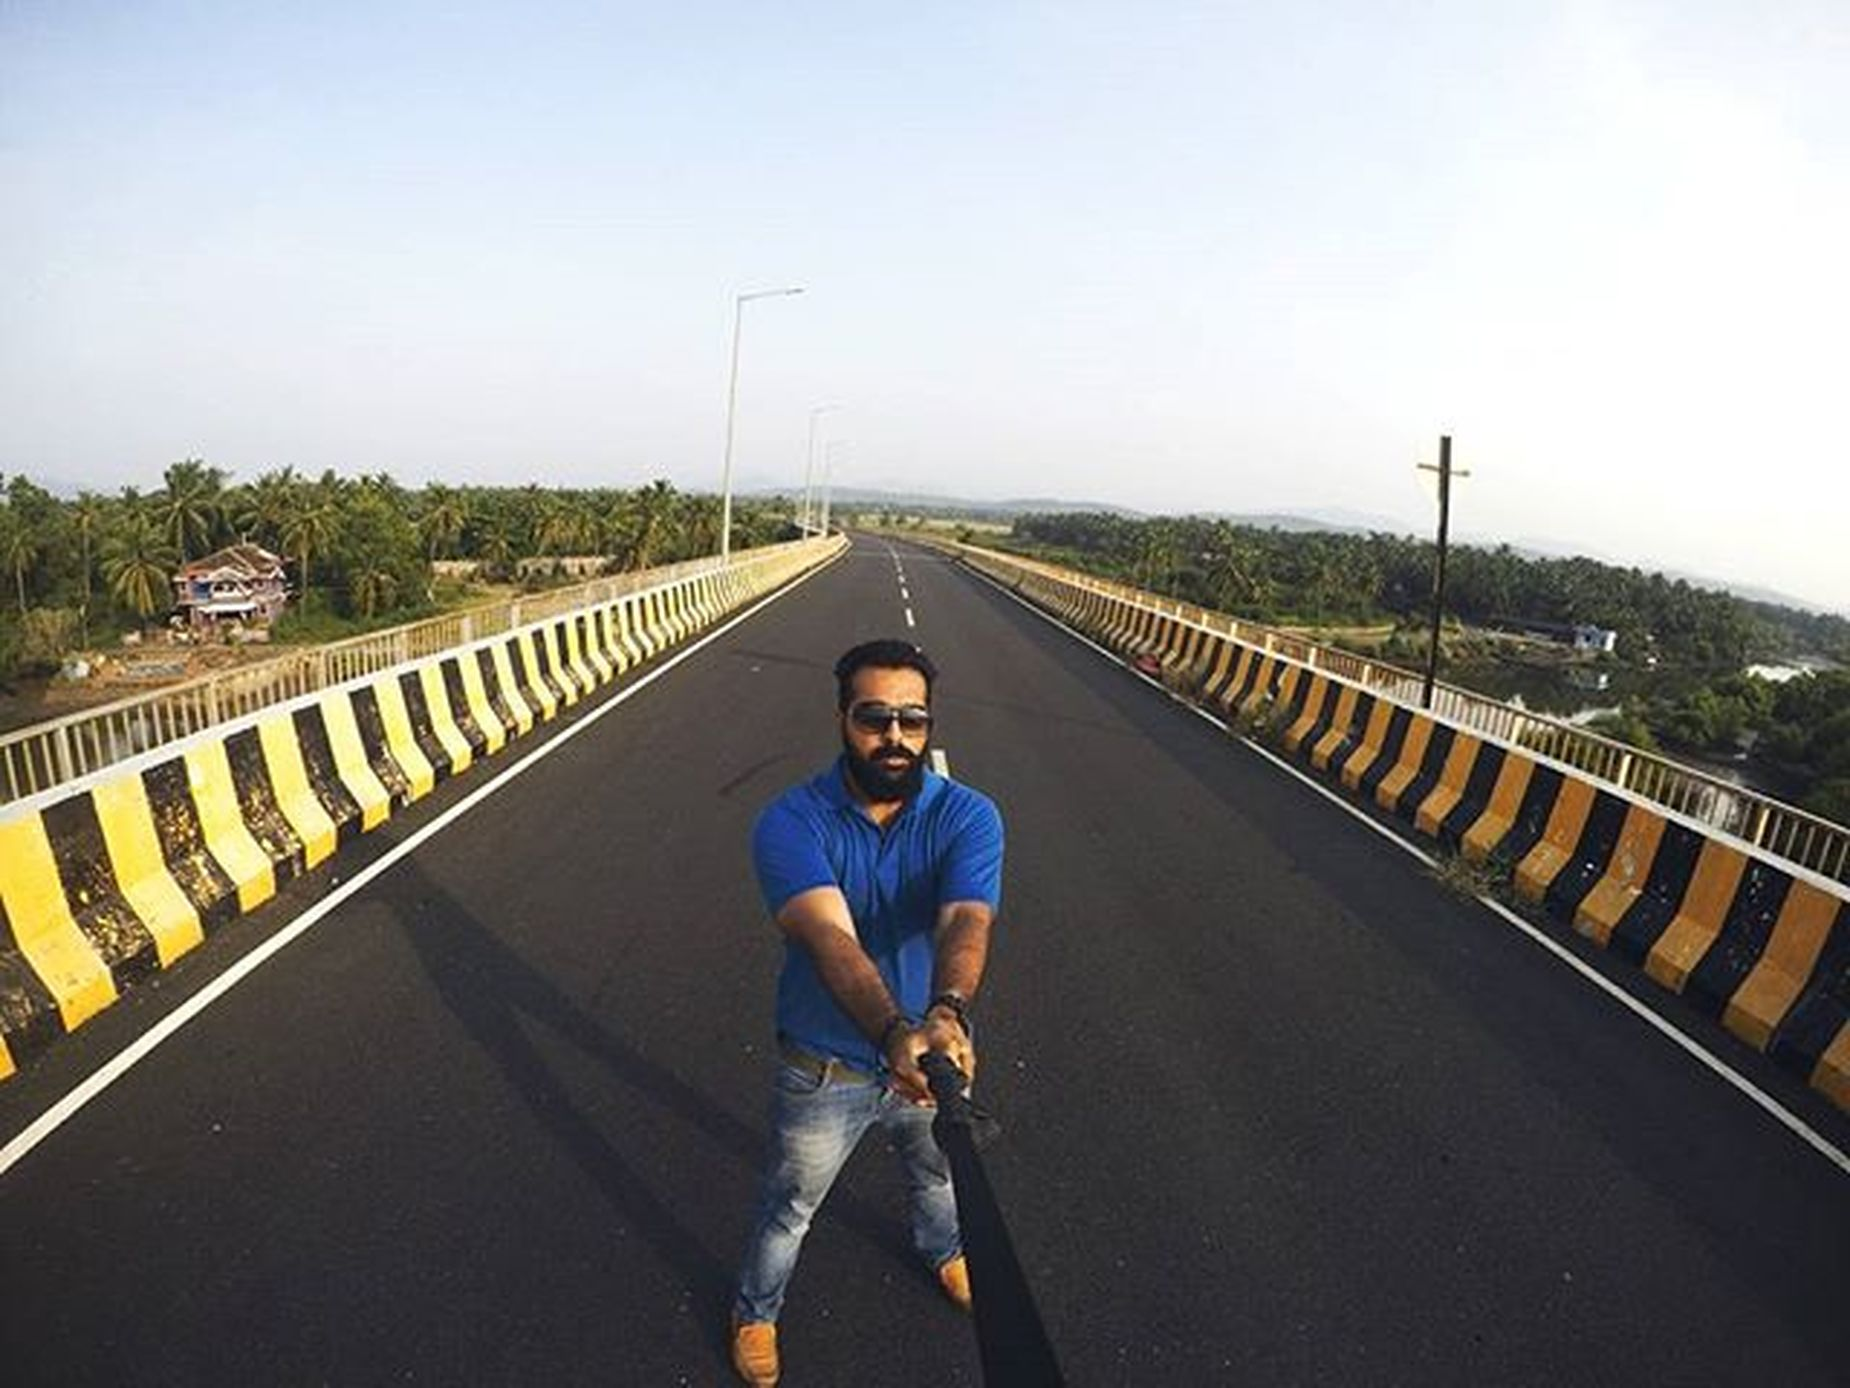 🌉This bridge🌉 Bridge Architecture Beauty Picmygoapic Emptybridge Goanlife Awesome Riverside Goan Ilovegoa Goanboy Traveling Roadtripping Gopro Goprooftheday Lobster Ahd Goa Mytravelgram